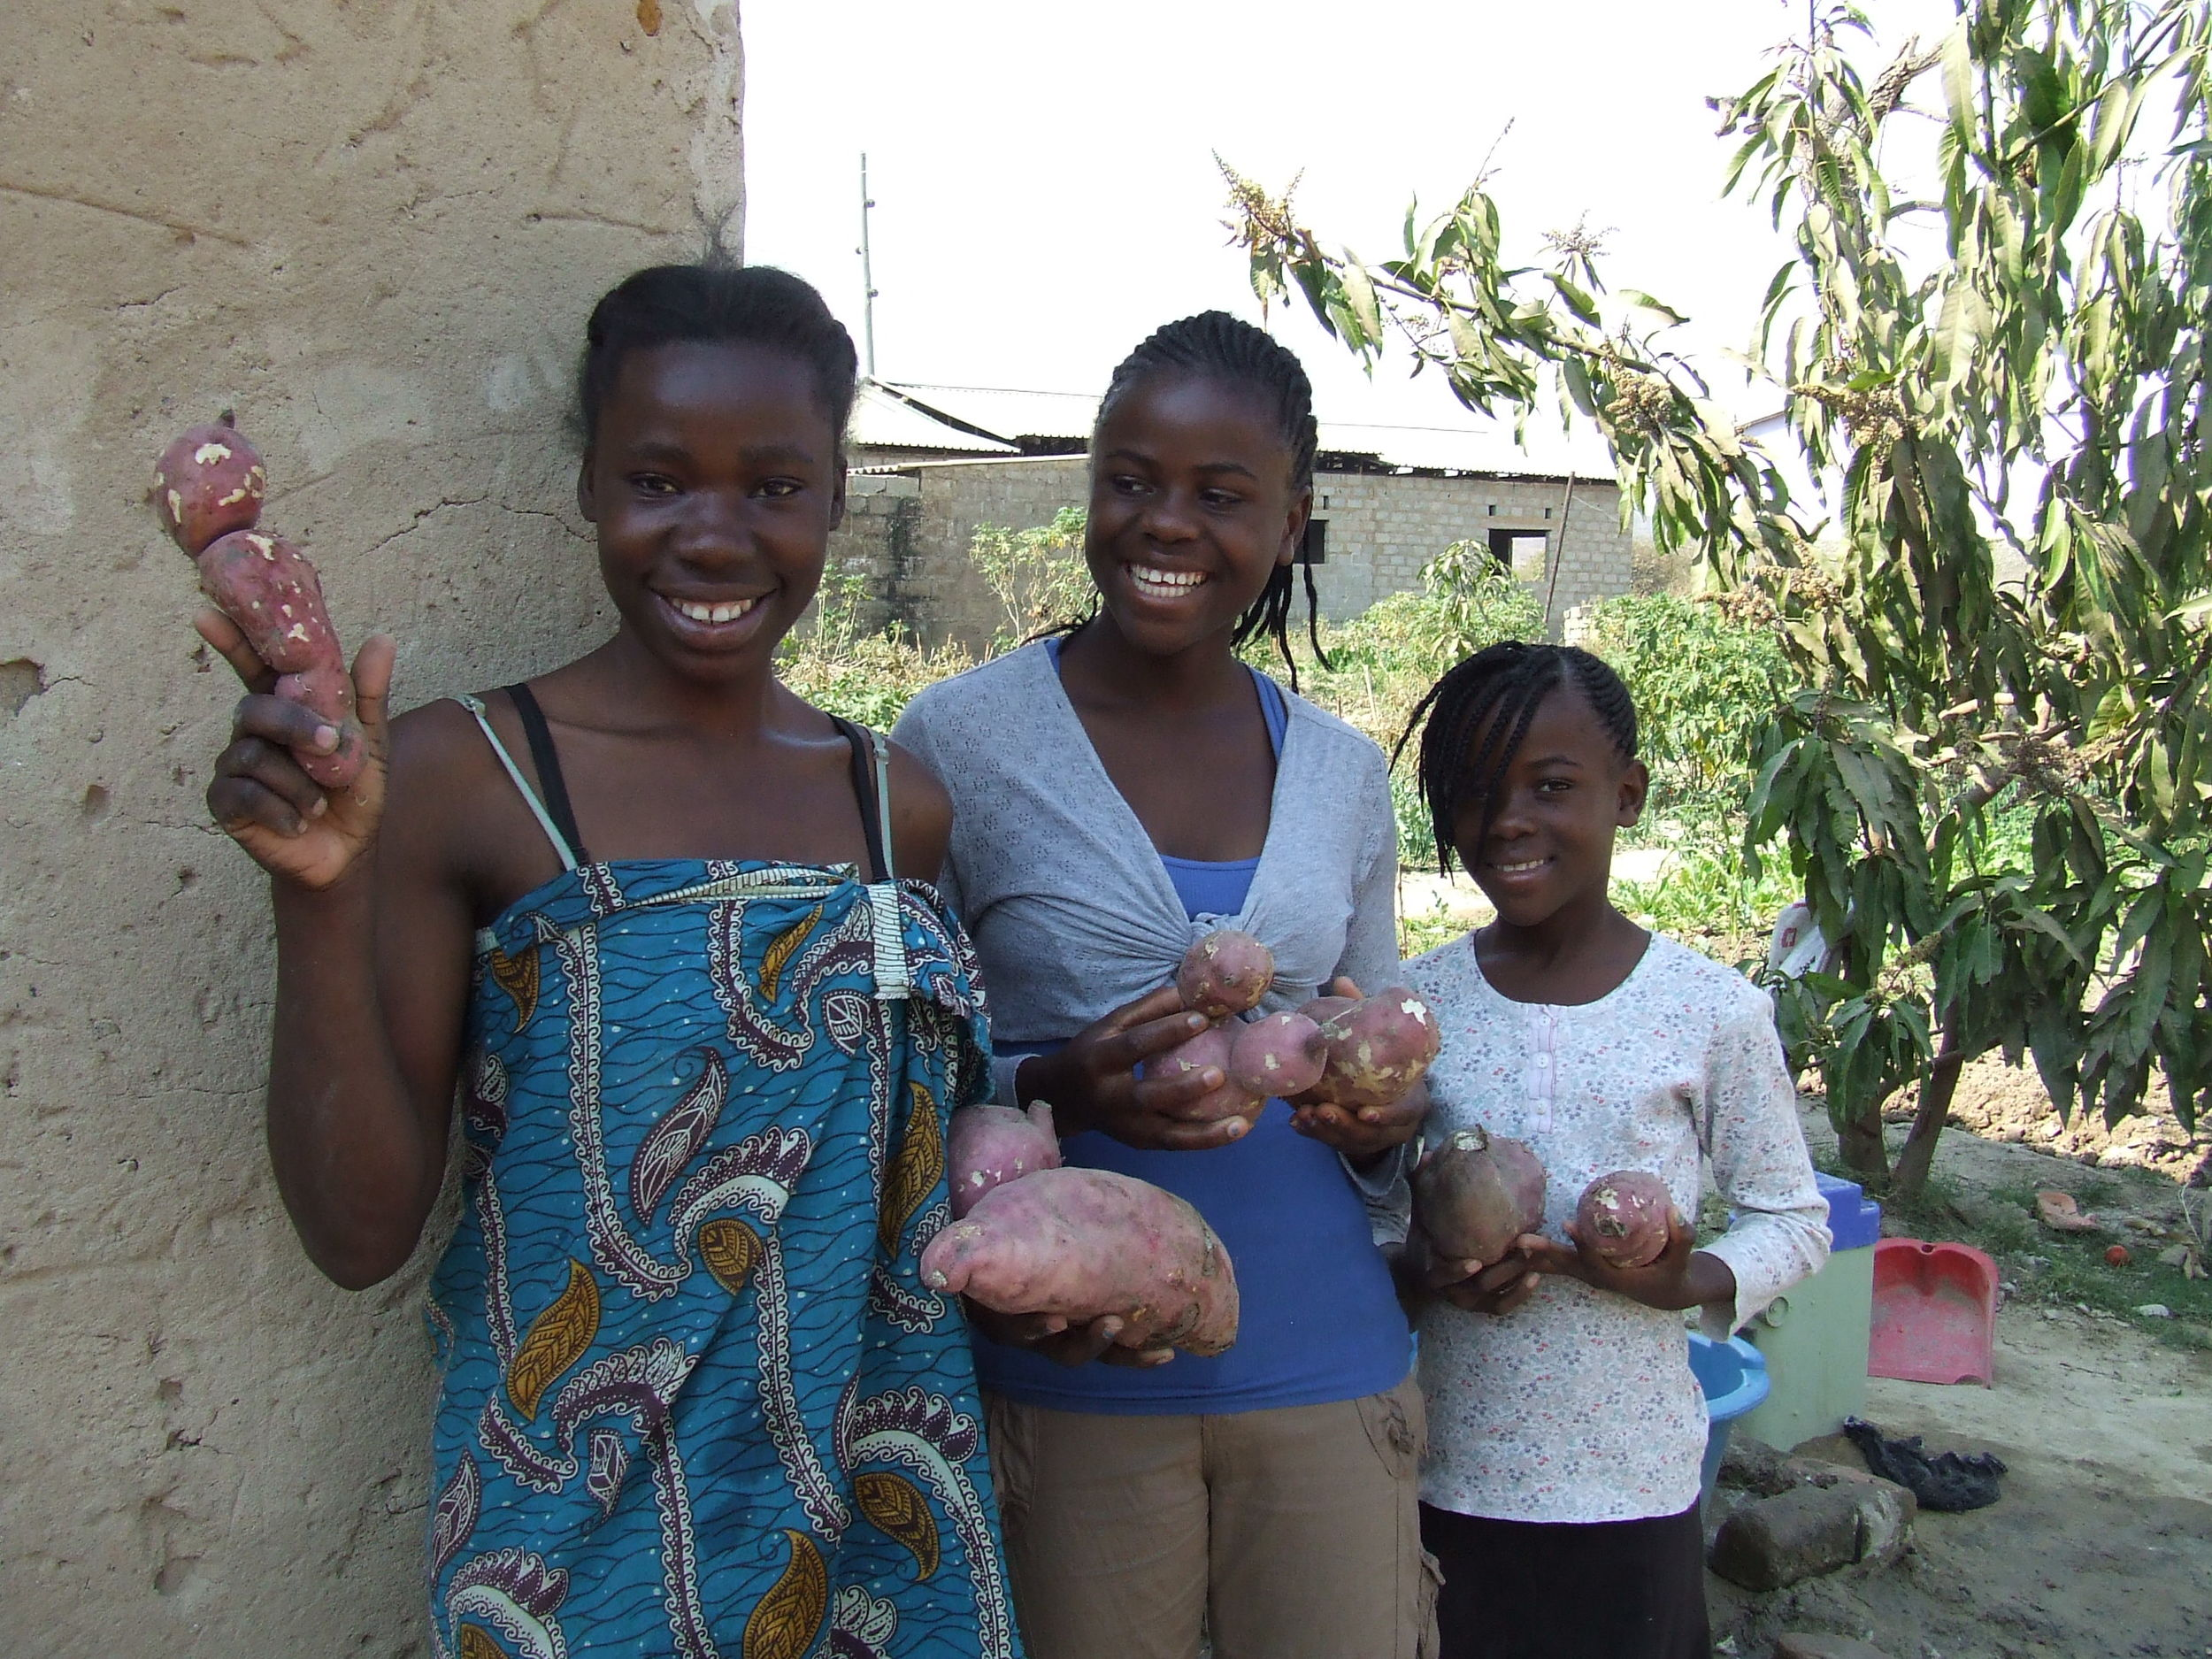 Bertha and two other boarders show off the sweet potatoes grown in the garden.